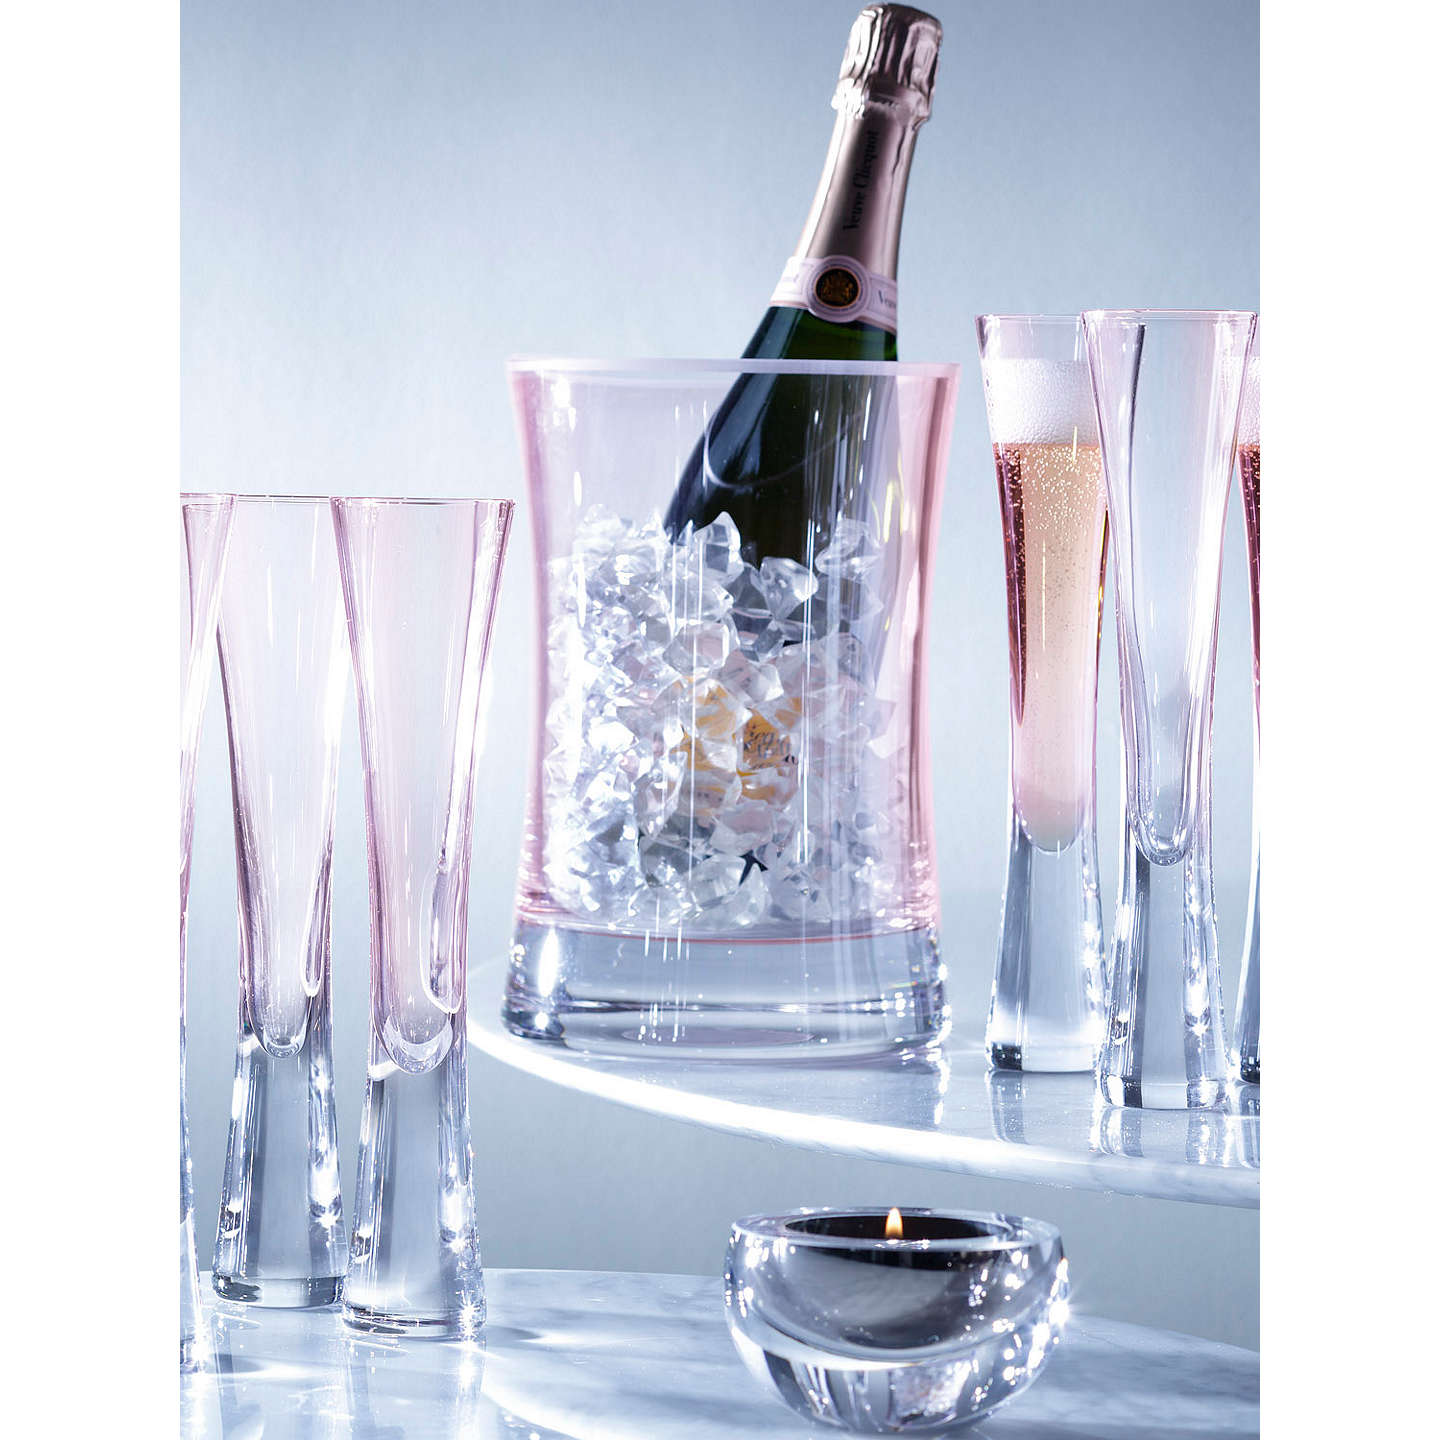 BuyLSA International Moya Champagne Flutes, Blush, 170ml, Set of 2 Online at johnlewis.com